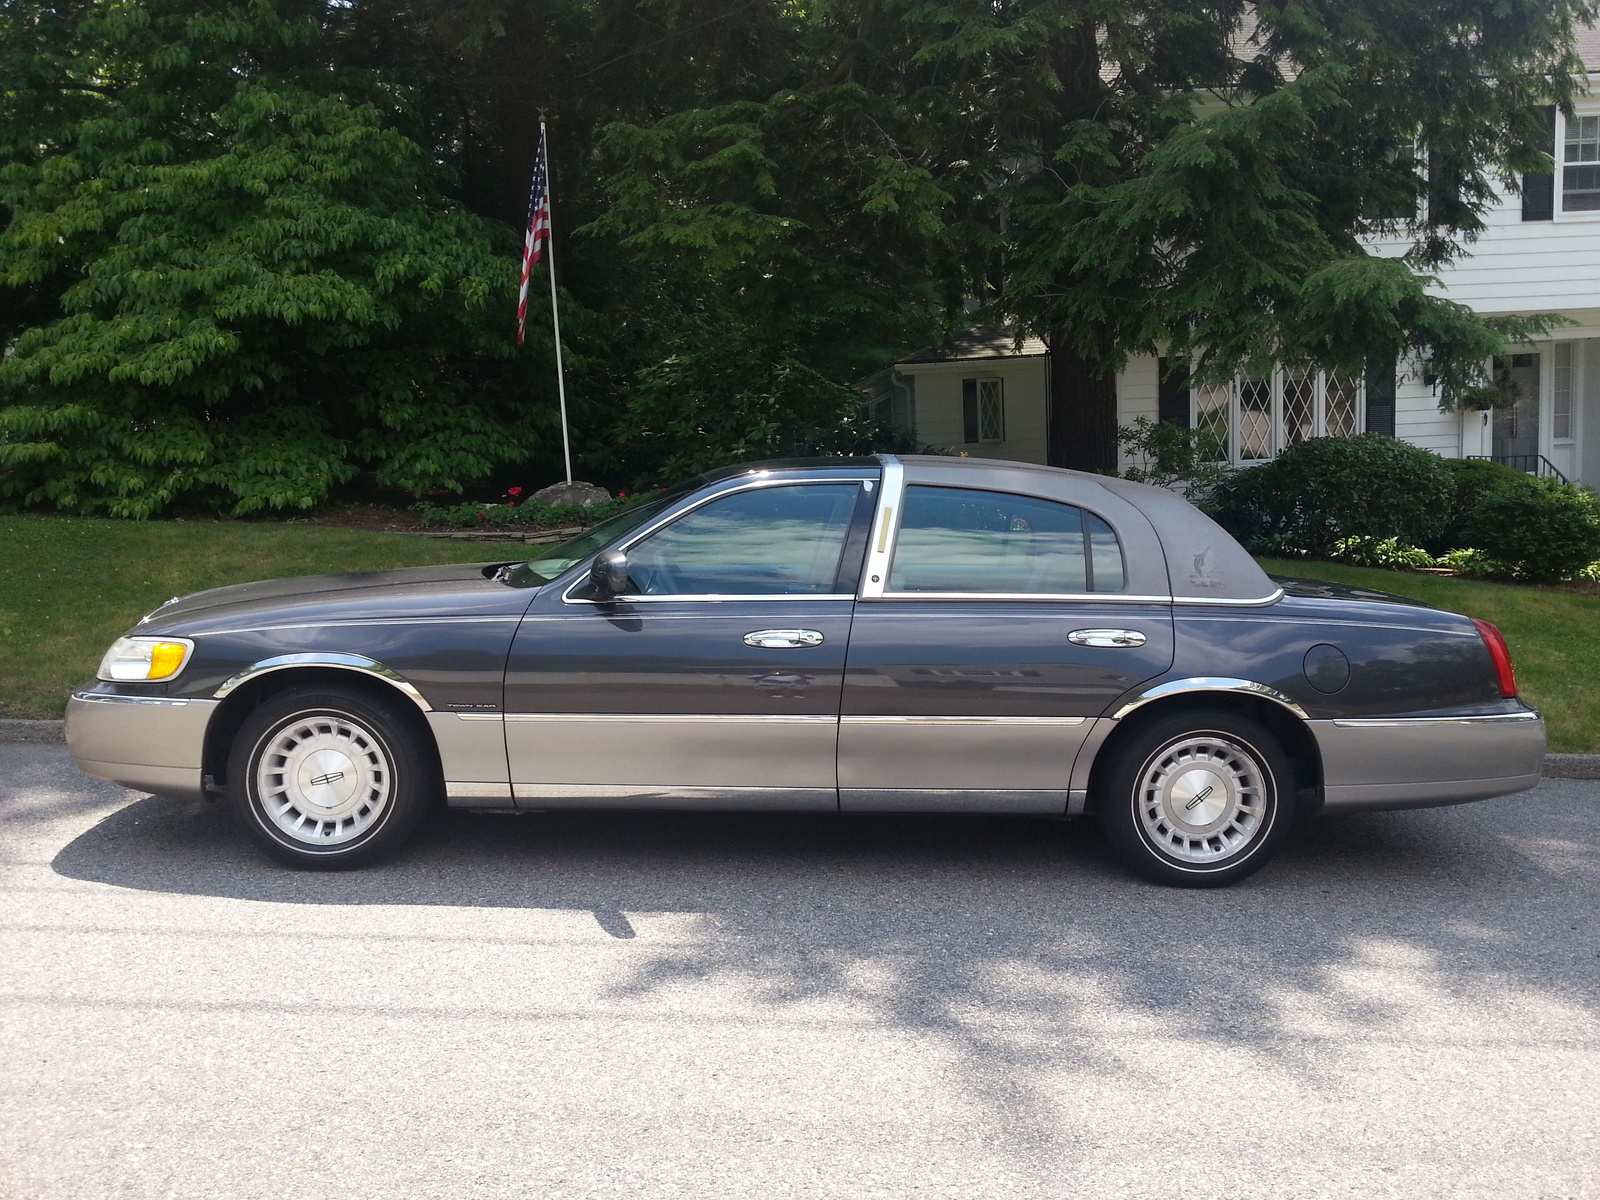 1998 Lincoln Town Car - Pictures